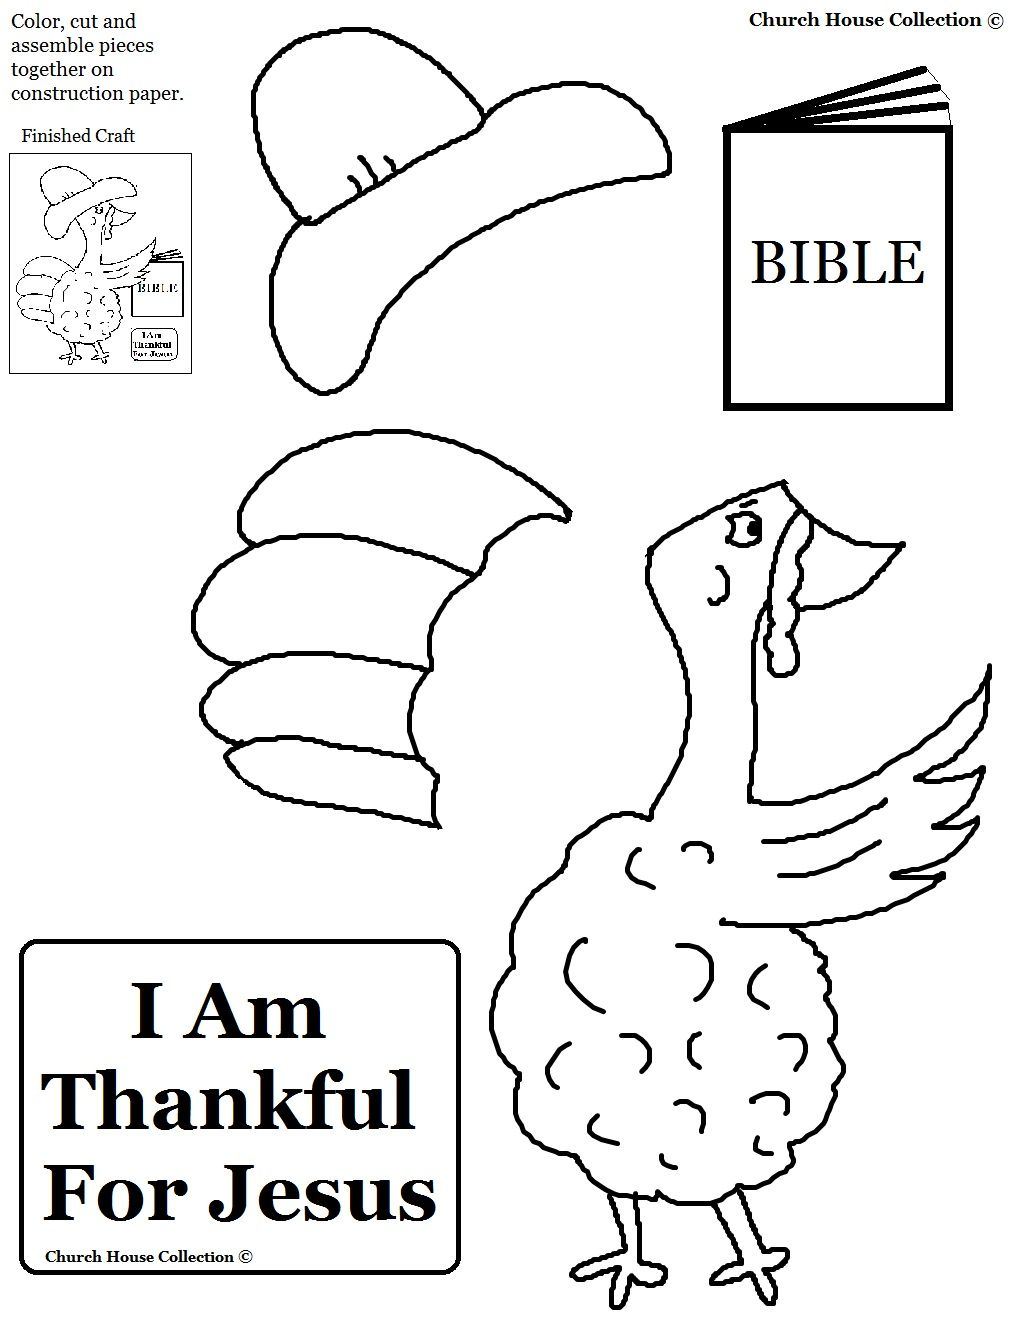 Thanksgiving Turkey I Am Thankful For Jesus Cutout Activity Sheet Childrens Church